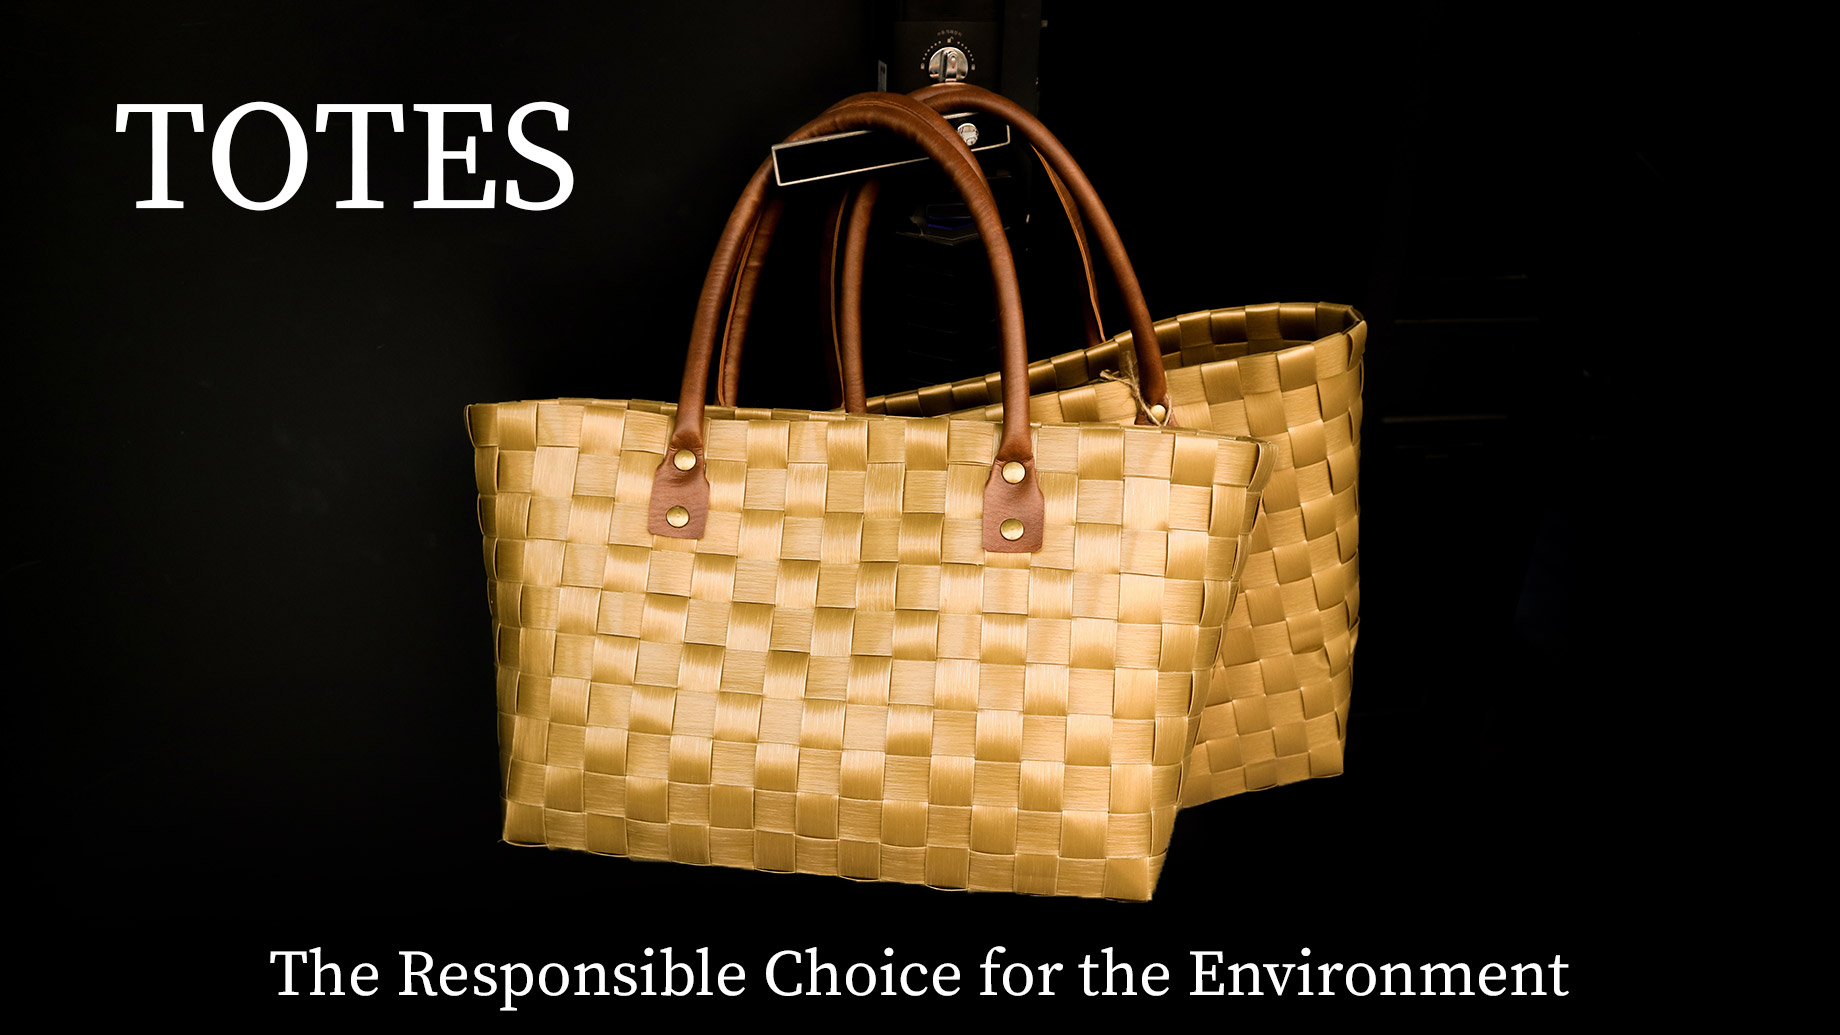 TOTES - The Responsible Choice for the Environment